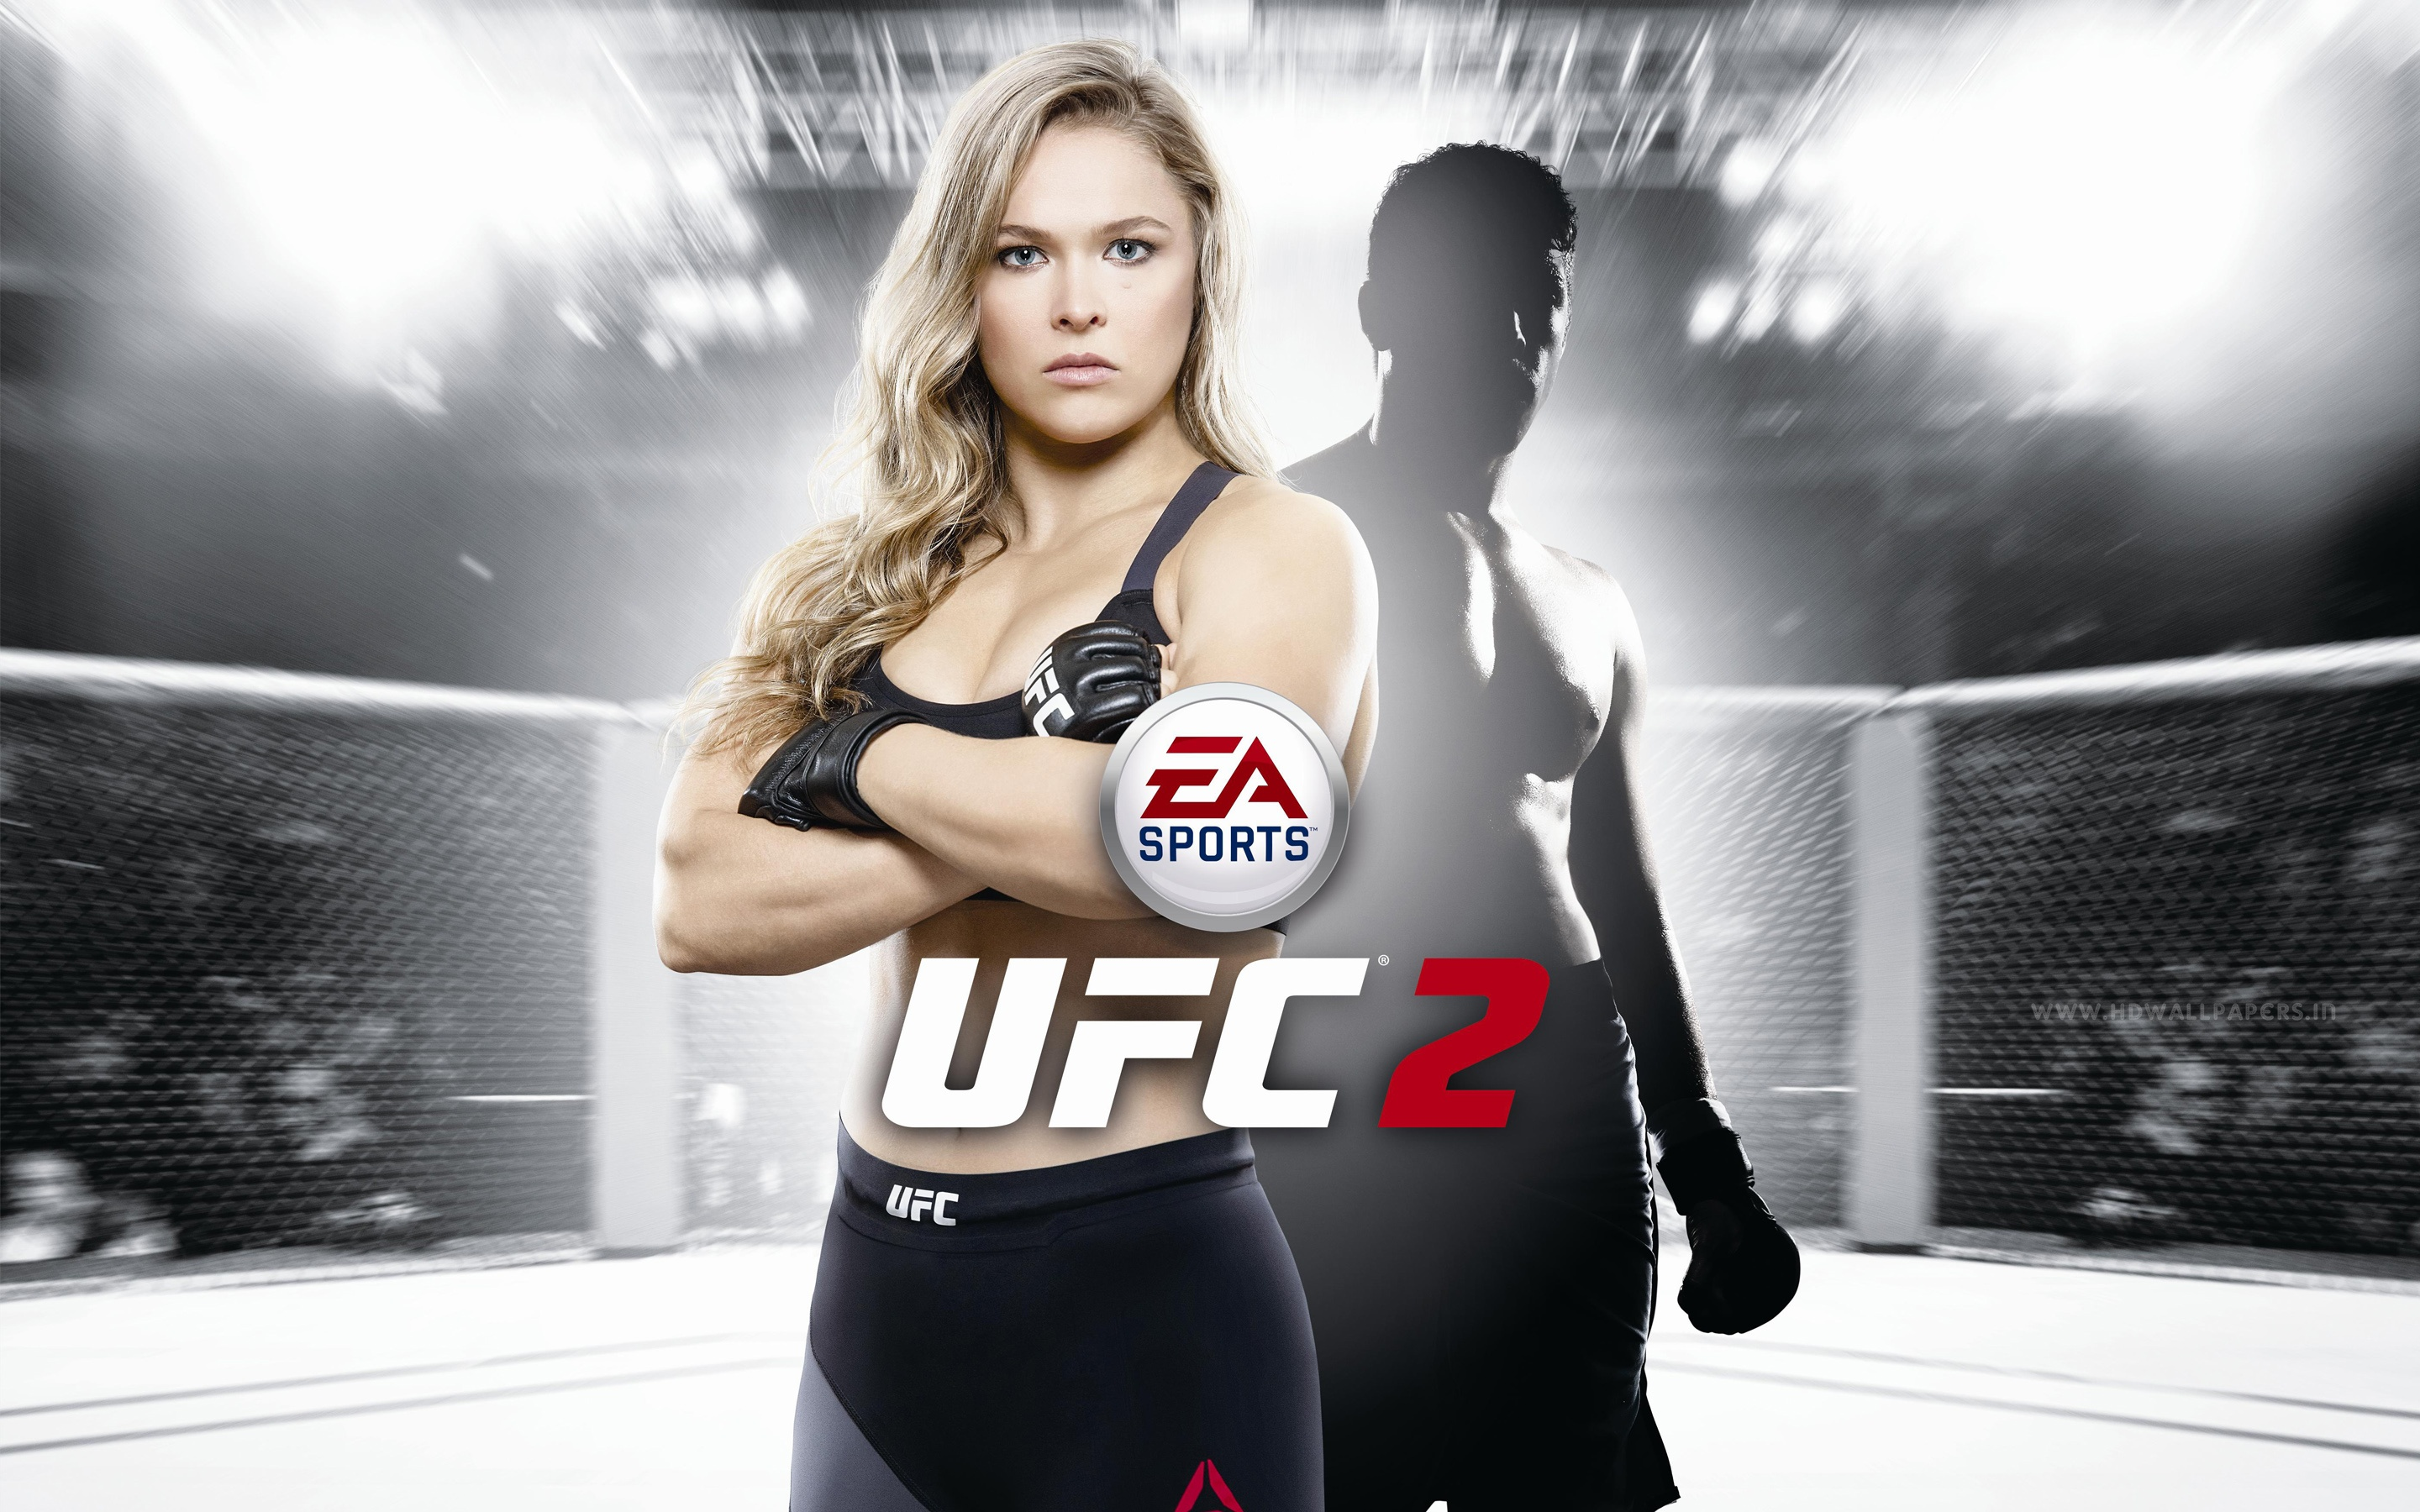 EA Sports UFC 2 Wallpapers in jpg format for download 2880x1800